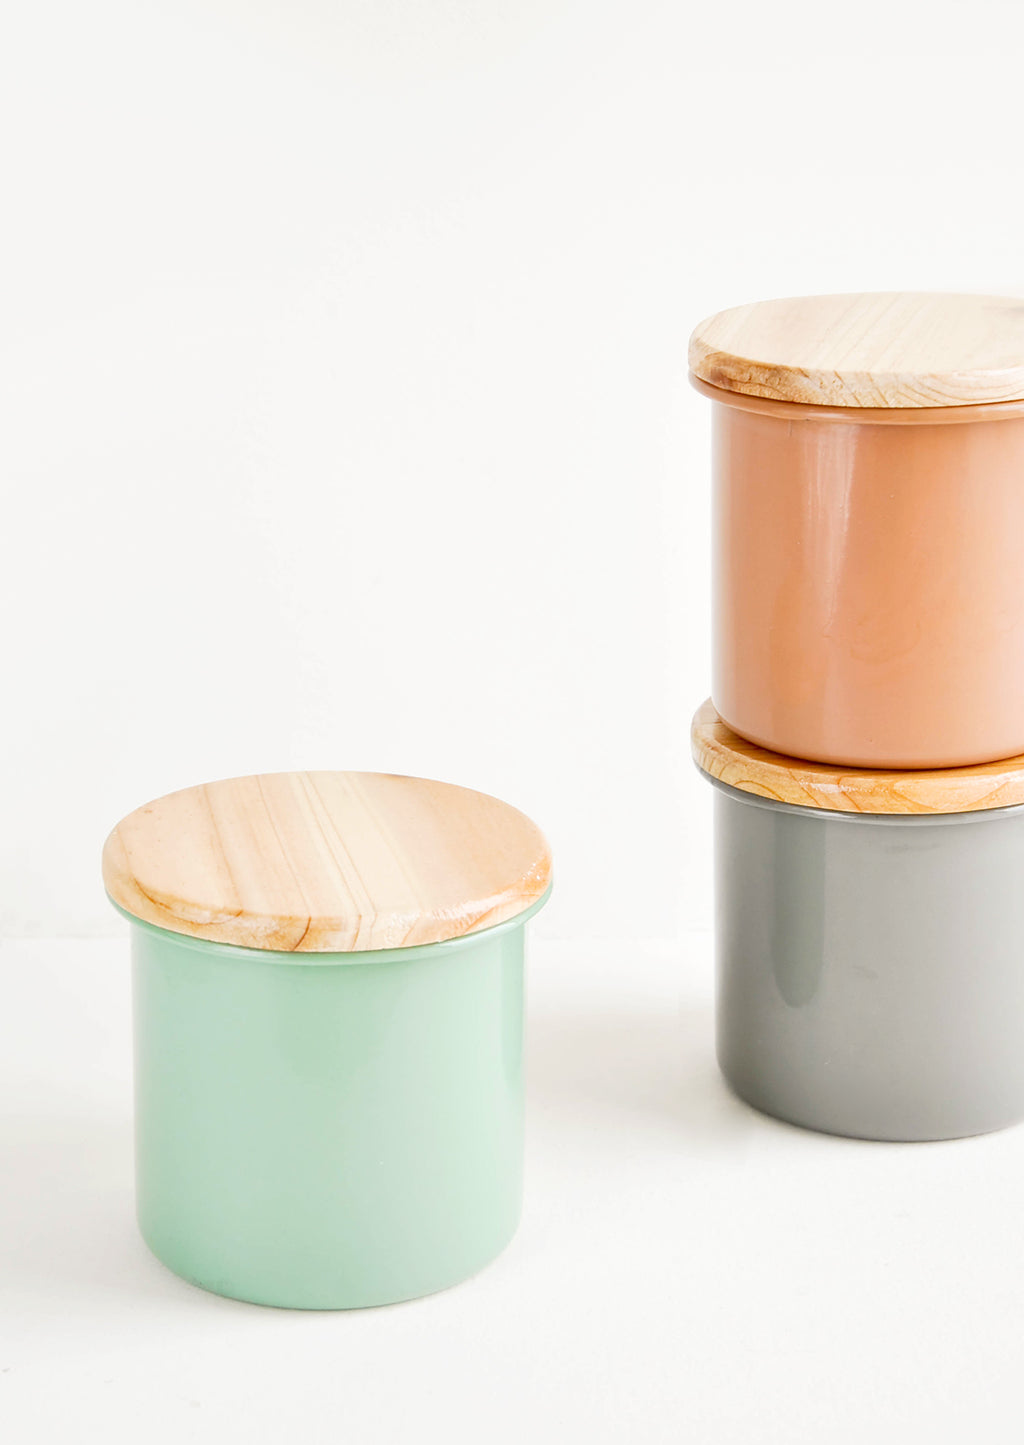 2: Enamel Storage Jars with Wooden Lids - LEIF